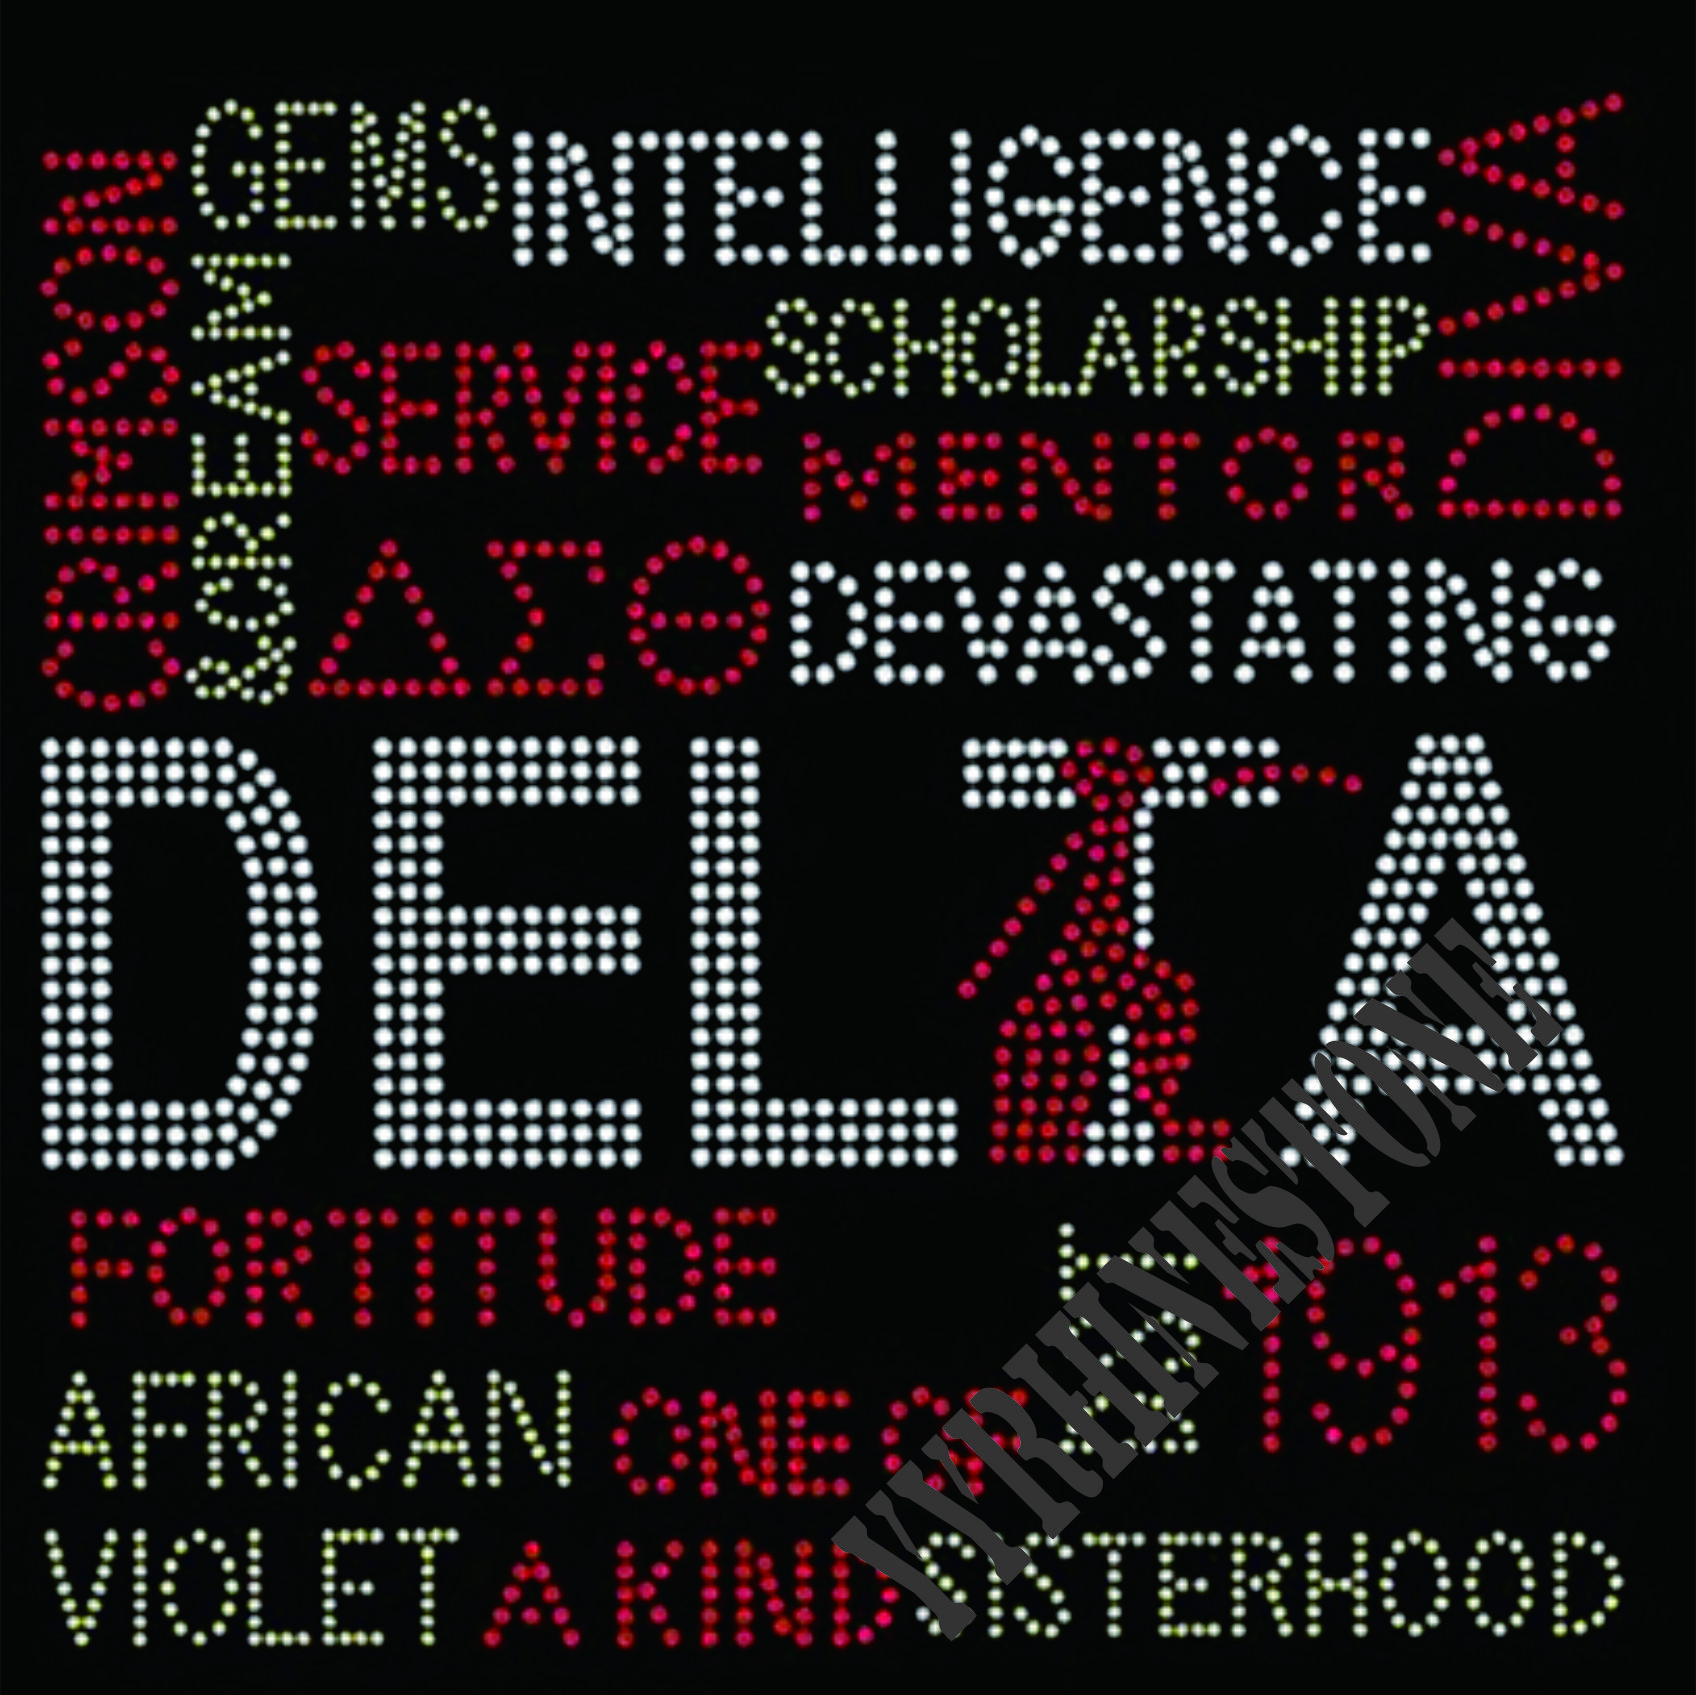 Delta Sigma Theta With Adjetives Rhienstone Transfer